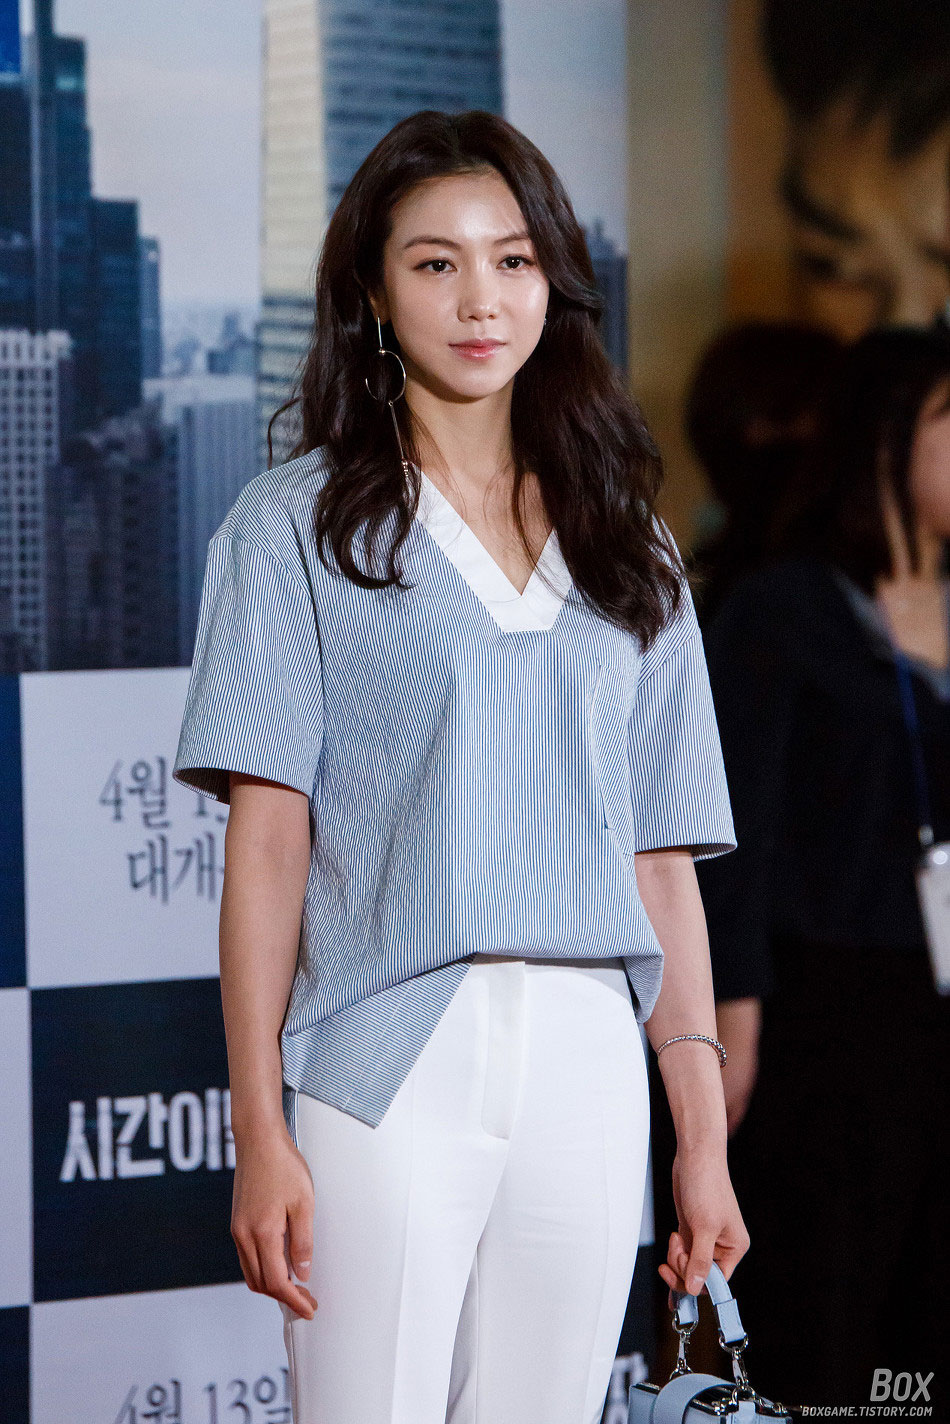 Kim Ok Bin Time Renegades movie premiere